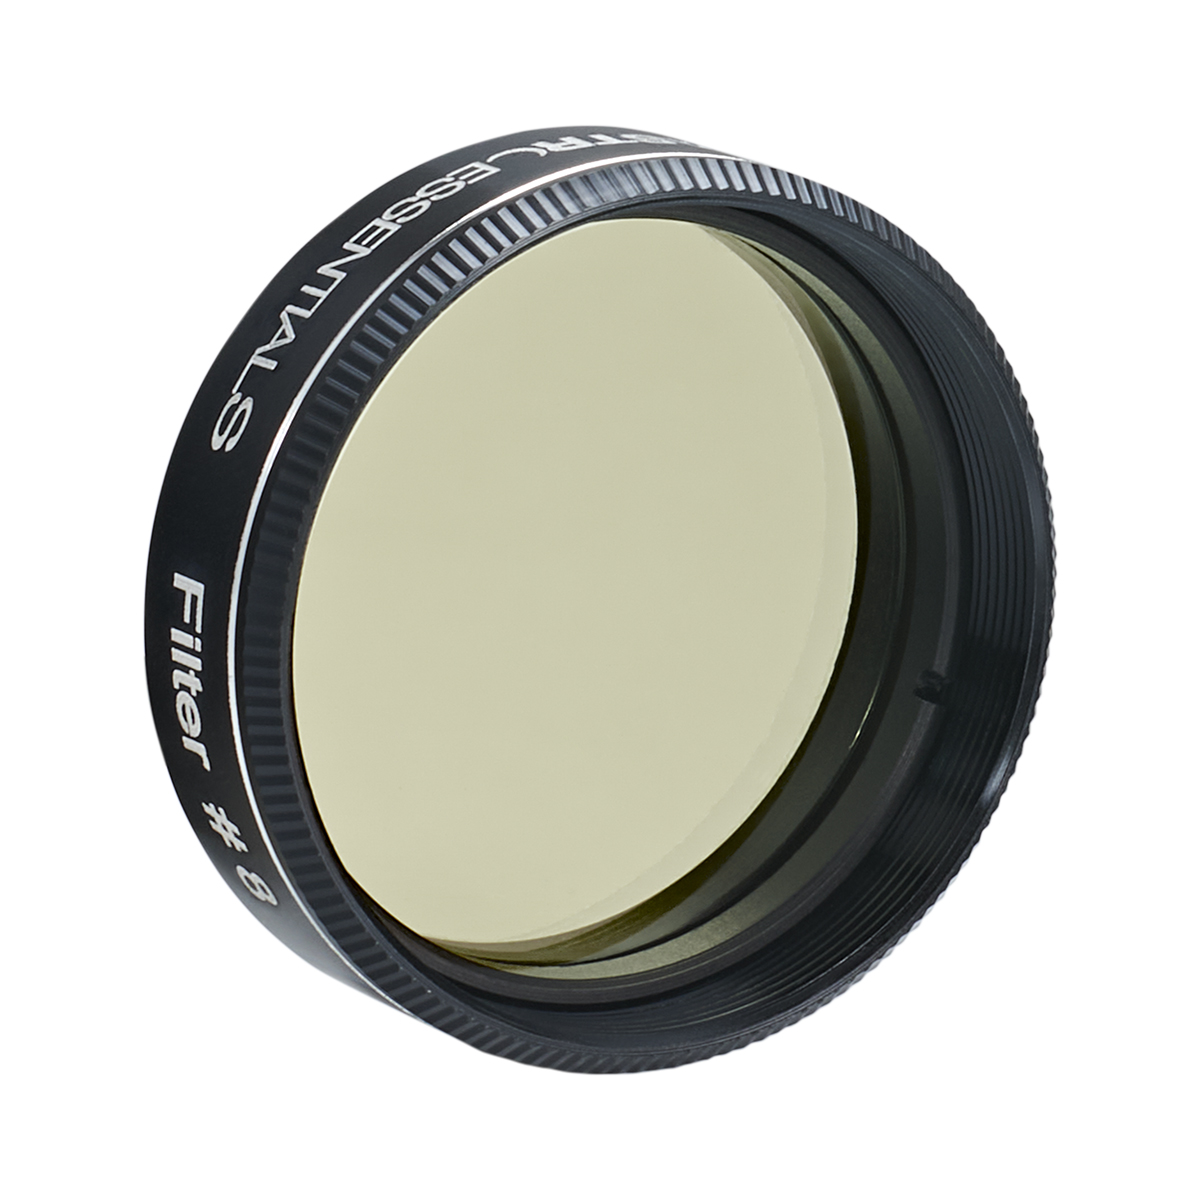 Astro Essentials 1.25'' #8 Light Yellow Filter